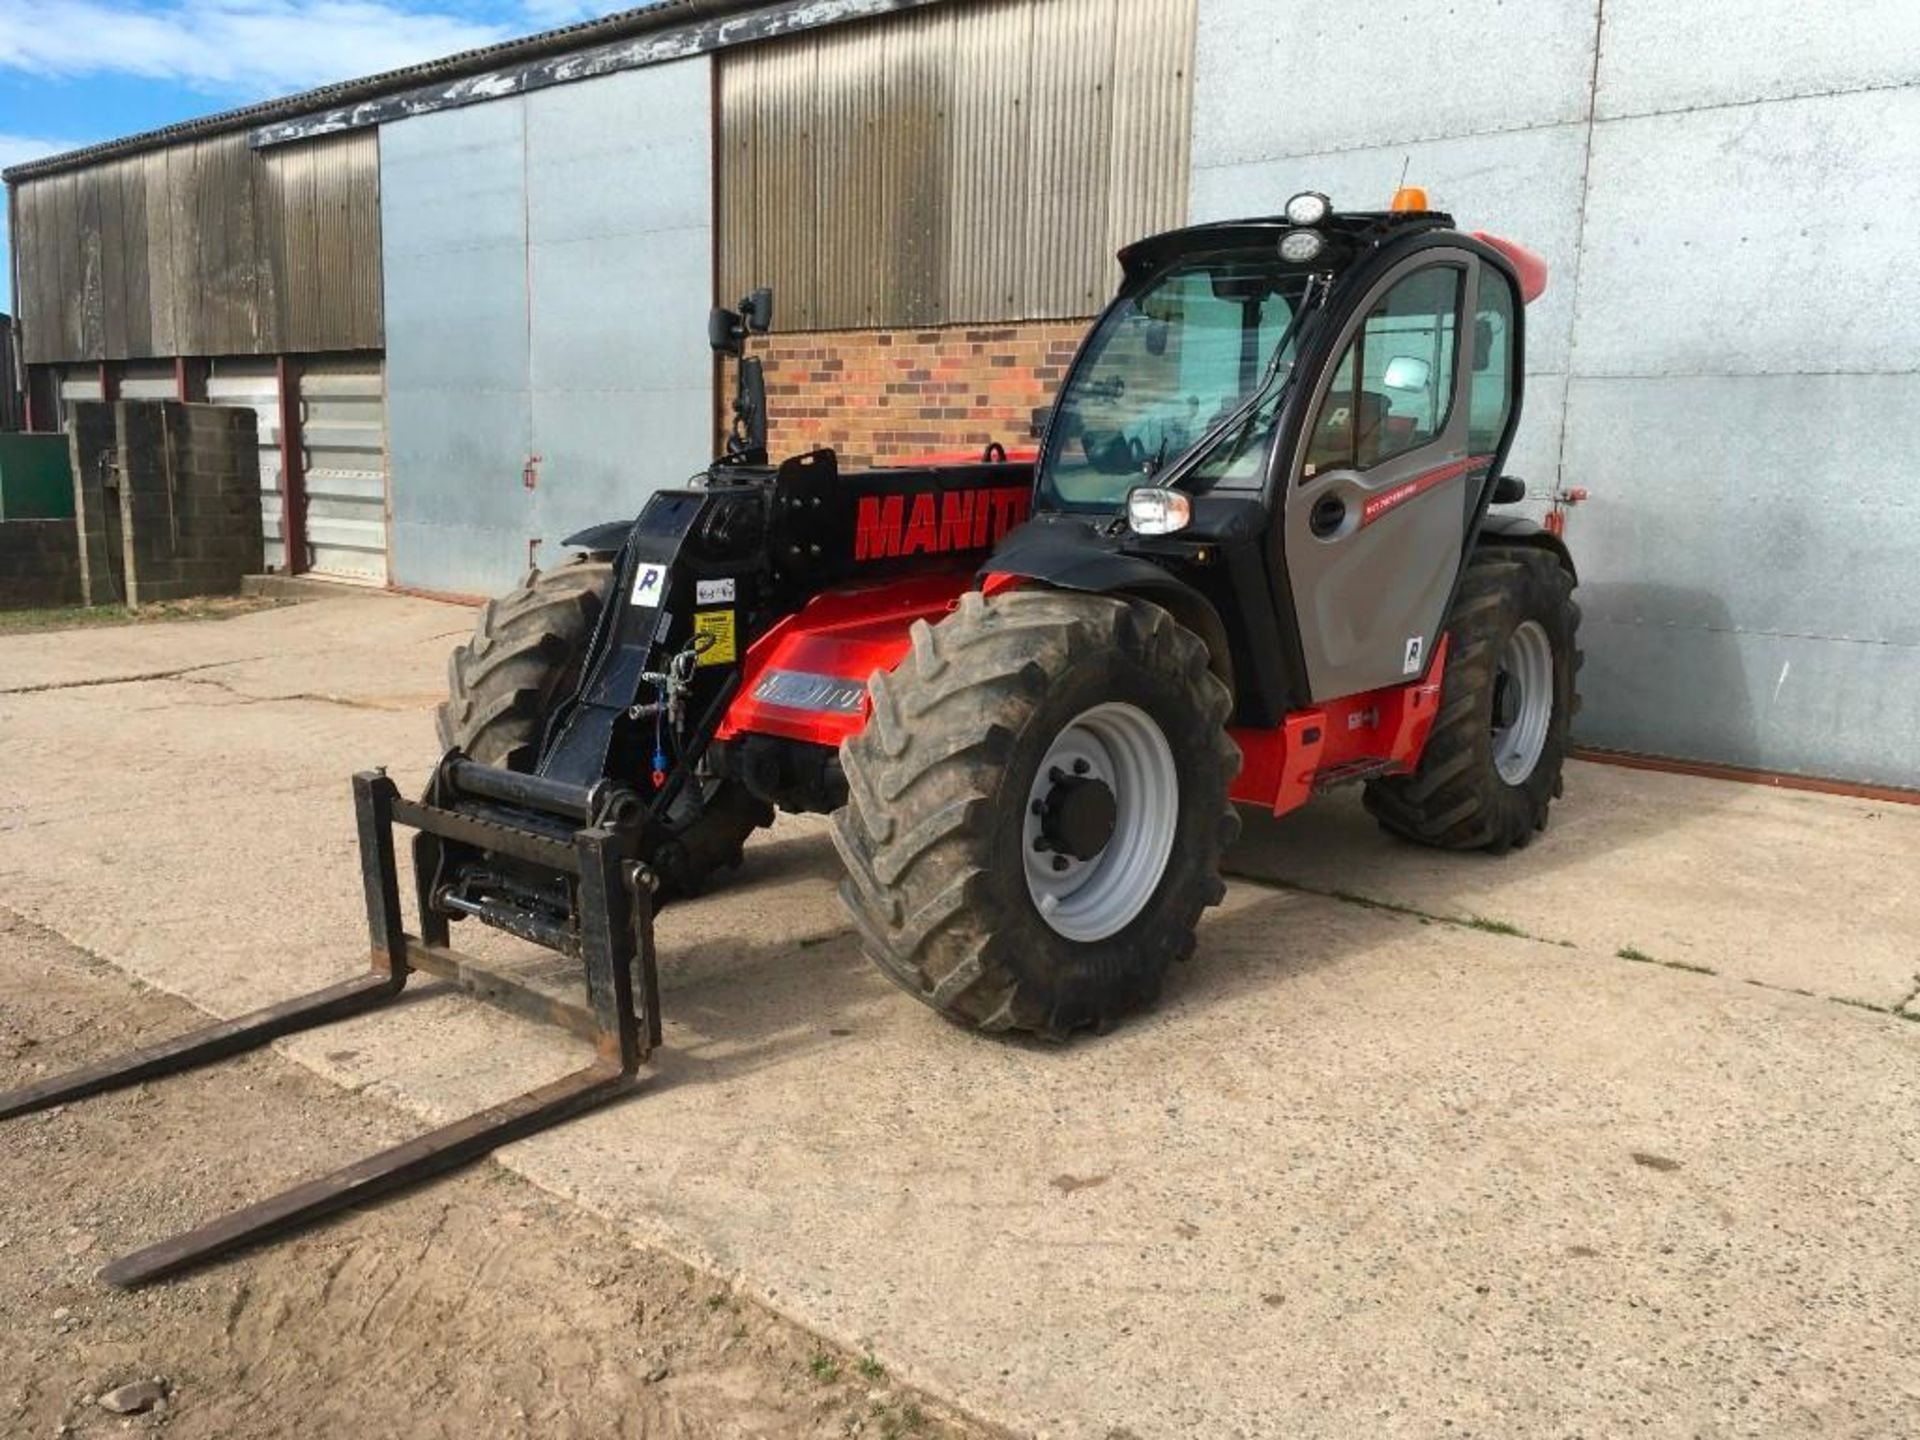 2017 Manitou MLT 737-130 PS+ Elite telehandler with rear pick up hitch, power shift, air seat, elect - Image 8 of 22